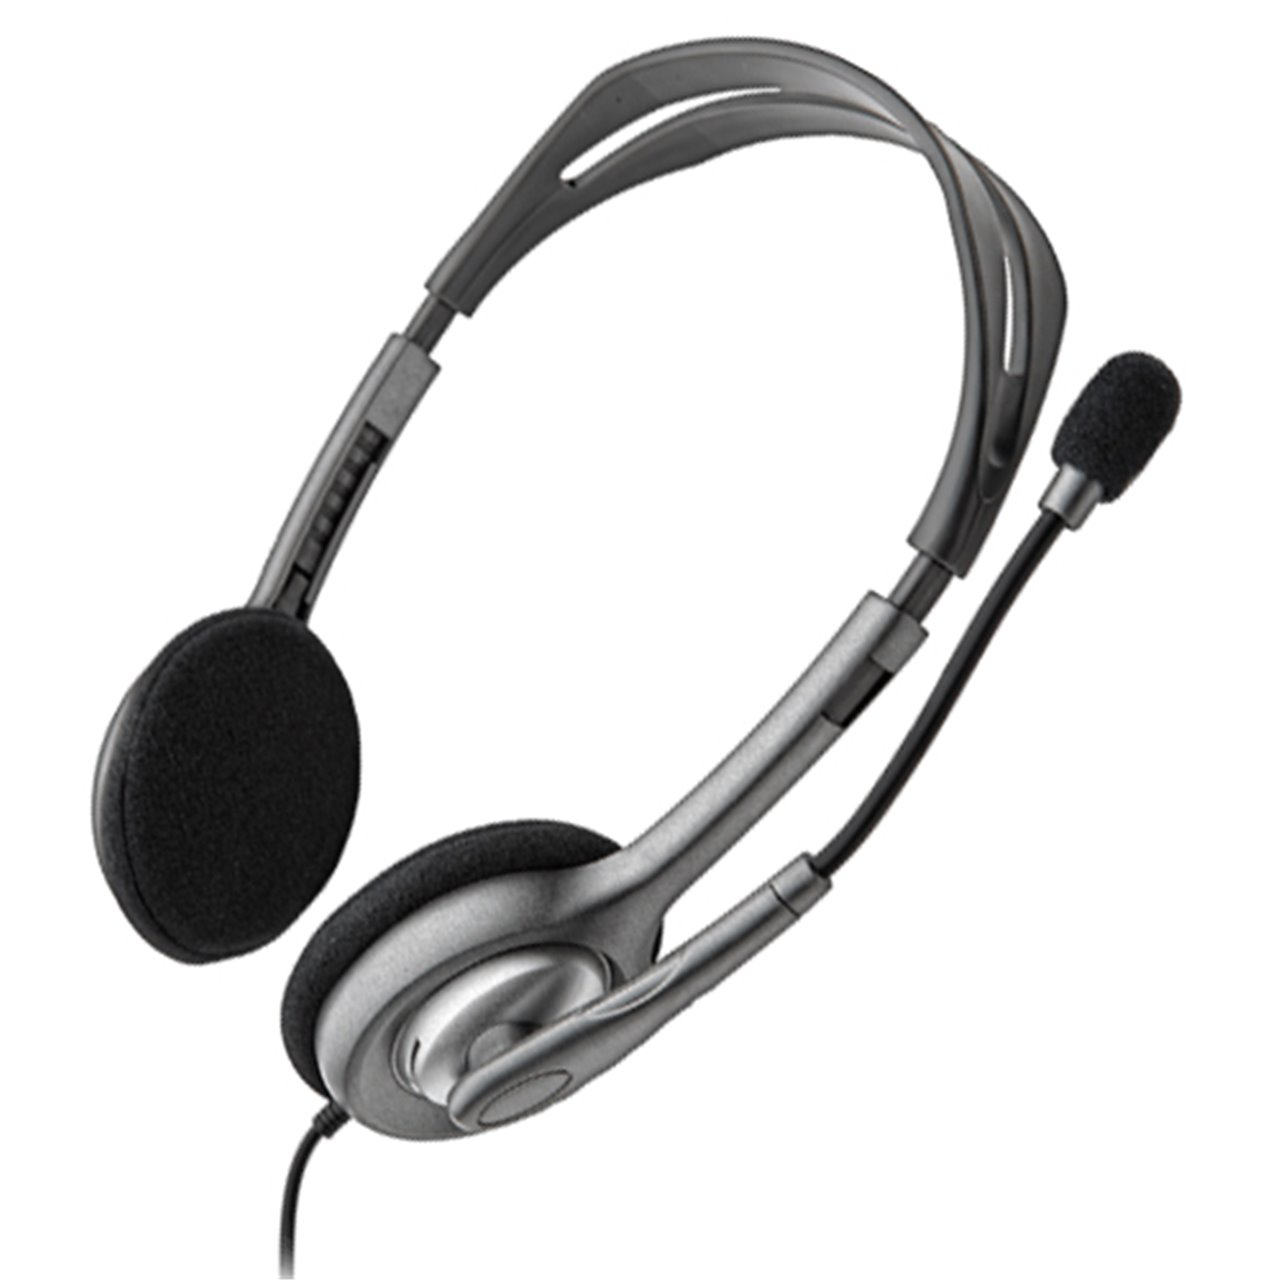 Cuffie Stereo Headseh H111Stereo Headseh H111 - DaxStore S.R.L.S. 8006b1504fc8